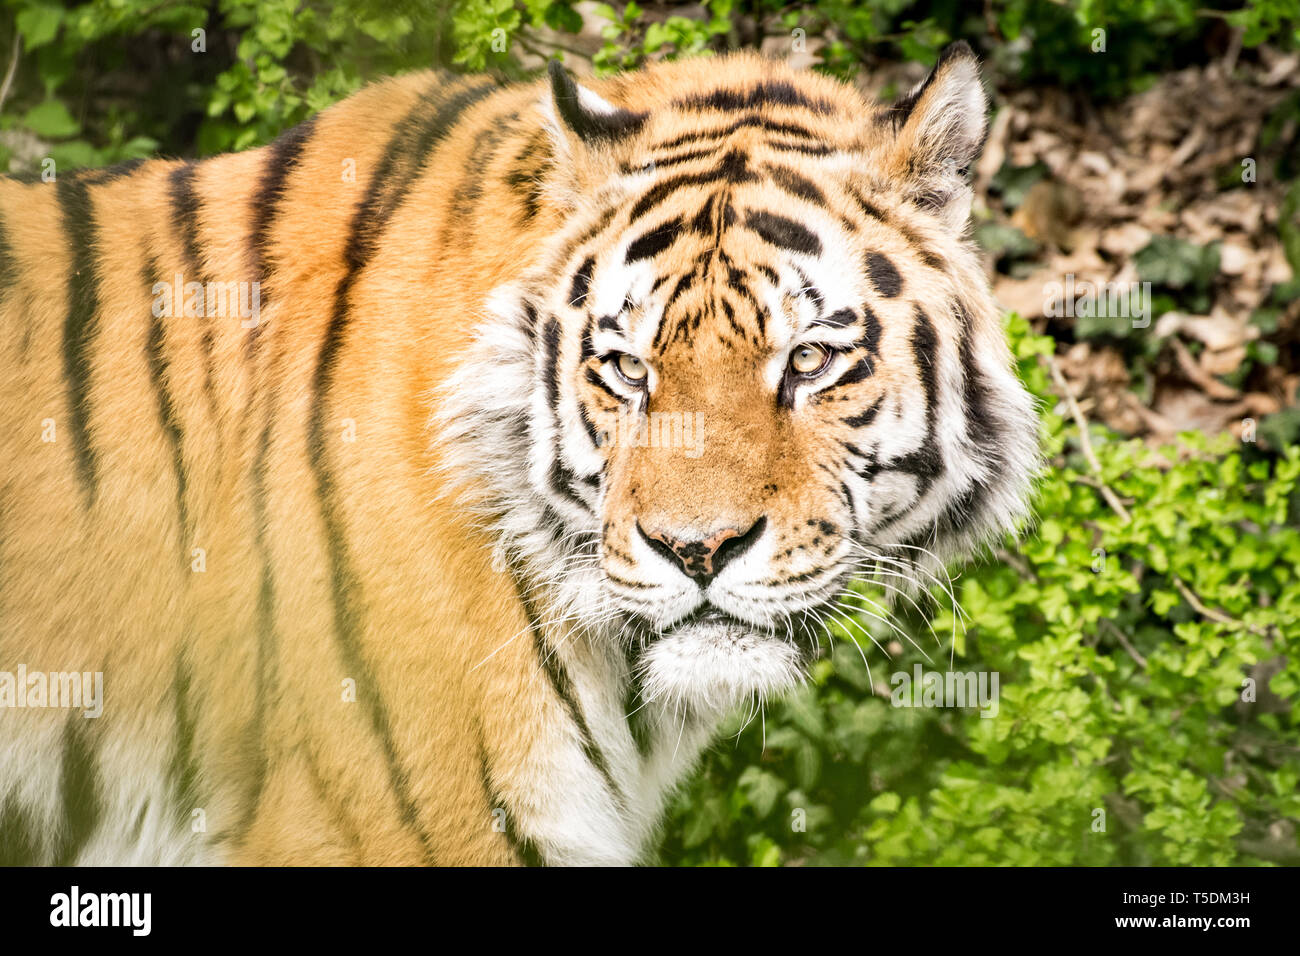 Siberian tiger in the Munich zoo - Stock Image